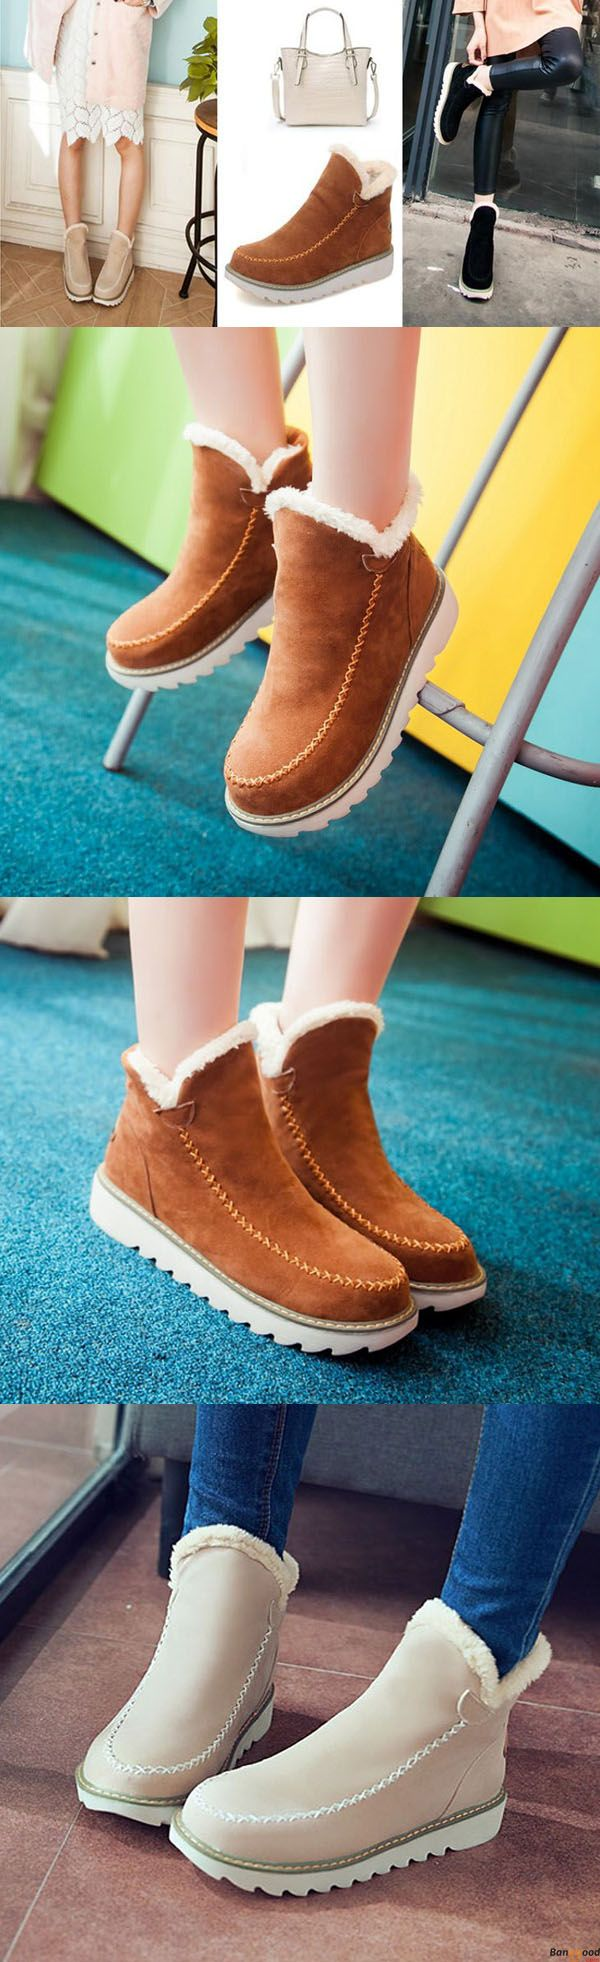 US$38.99+ Free Shipping. Big Size Pure Color Warm Fur Lining Winter Ankle Snow Boots For Women. Comfy and casual. Winter fashion style for women. Shop at banggood with super affordable price.